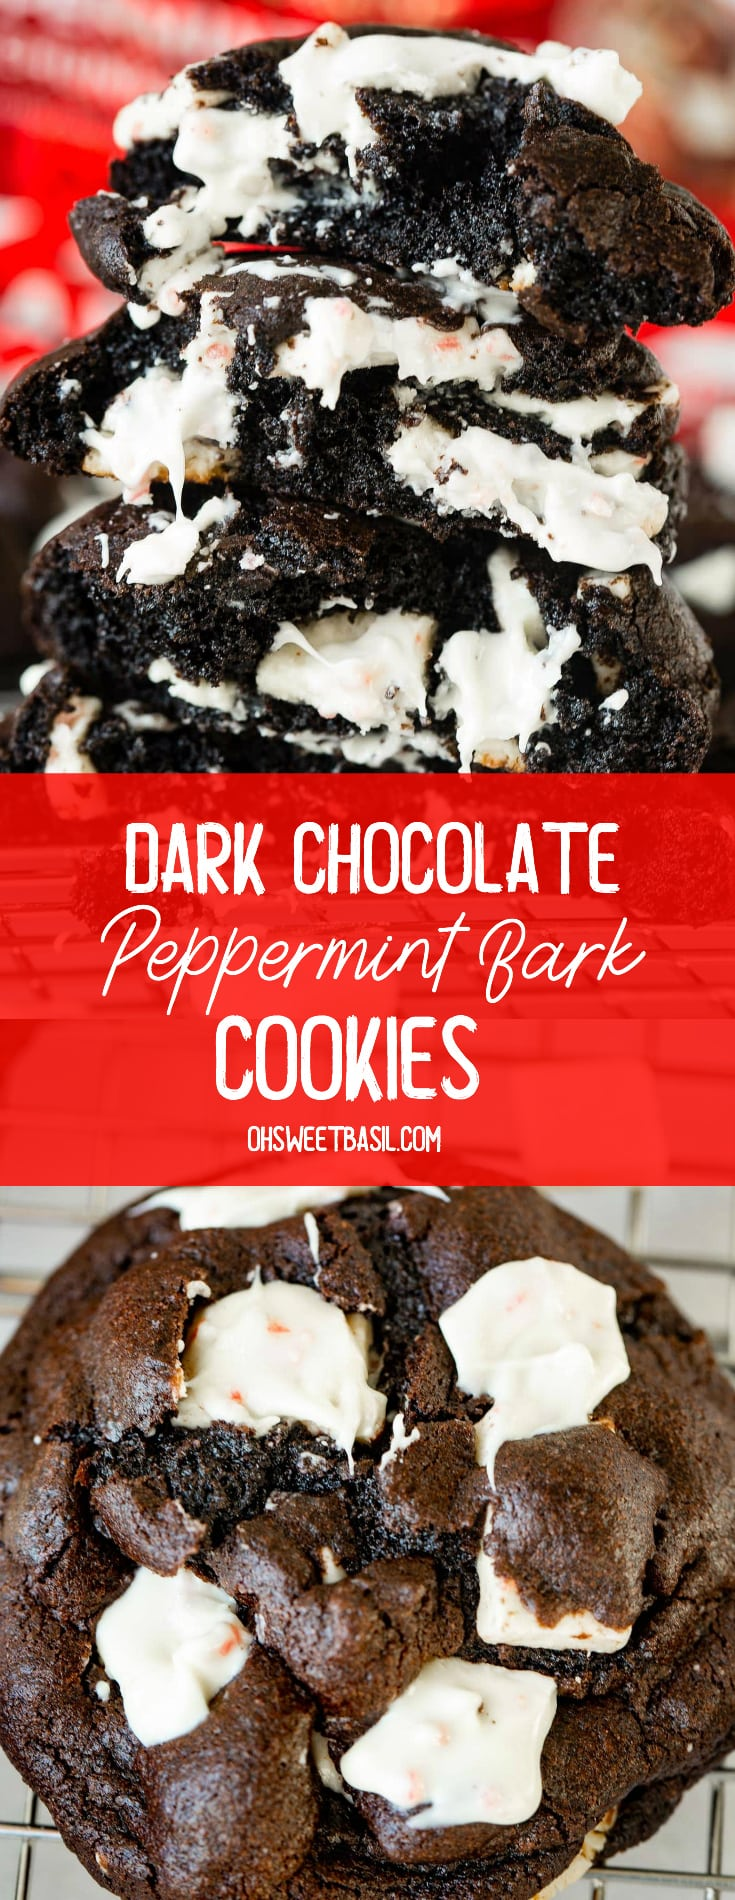 a stack of warm dark chocolate peppermint cookies on a cooling rack